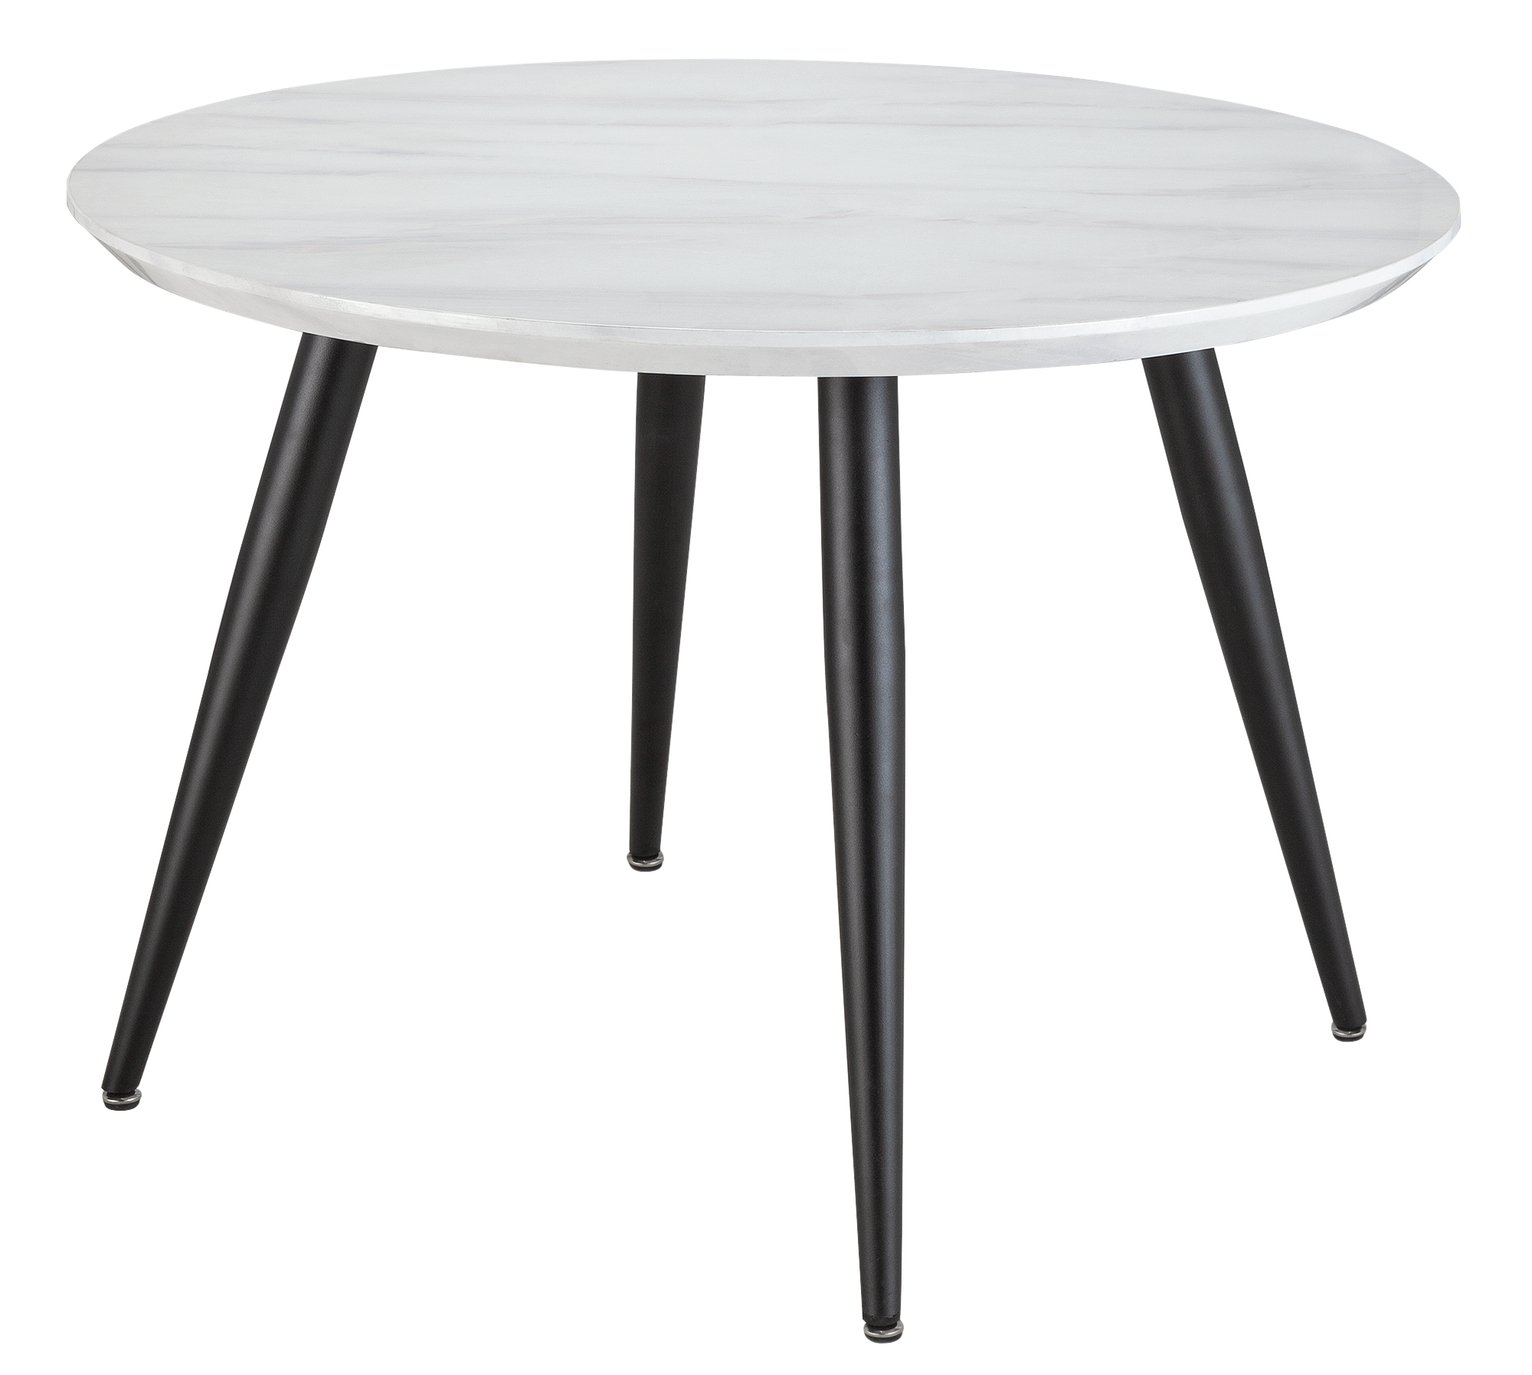 Argos Home Sienna Marble Effect 4 Seater Dining Table